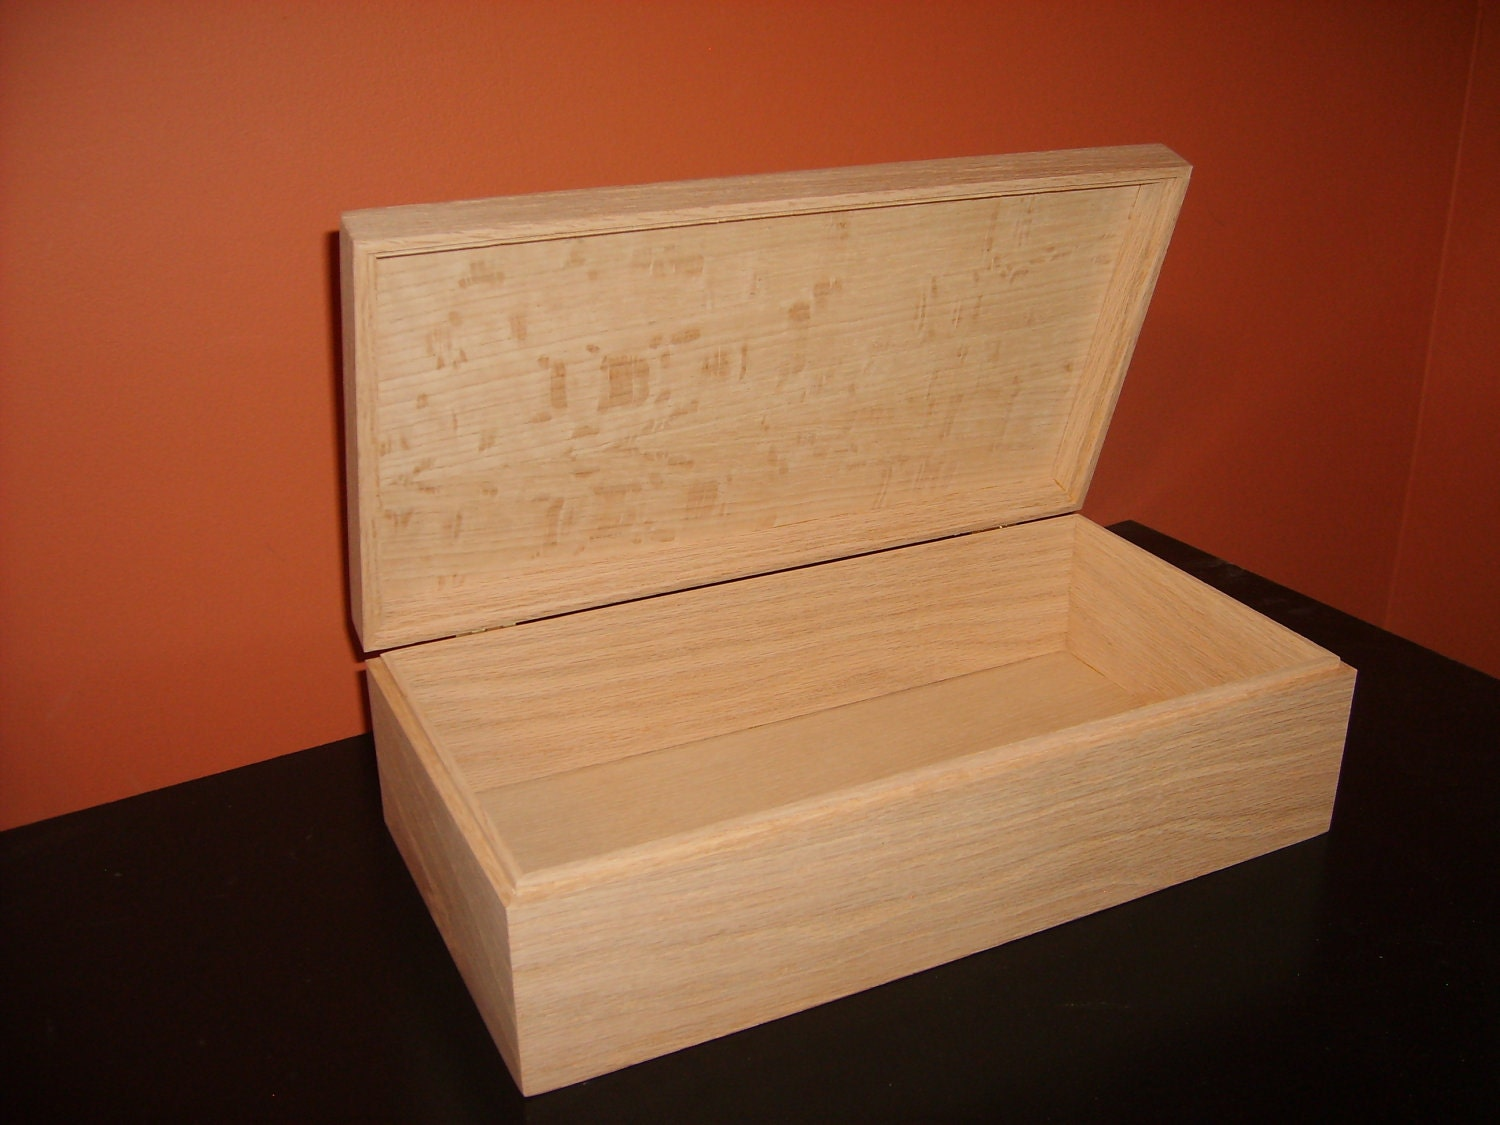 Unfinished wood craft boxes - Unfinished Wooden Box With Hinges Latch 10 X 6 X 3 3 4 Unfinished Wood Box Ready To Finish Engravable Wood Box Personalize With Engraving